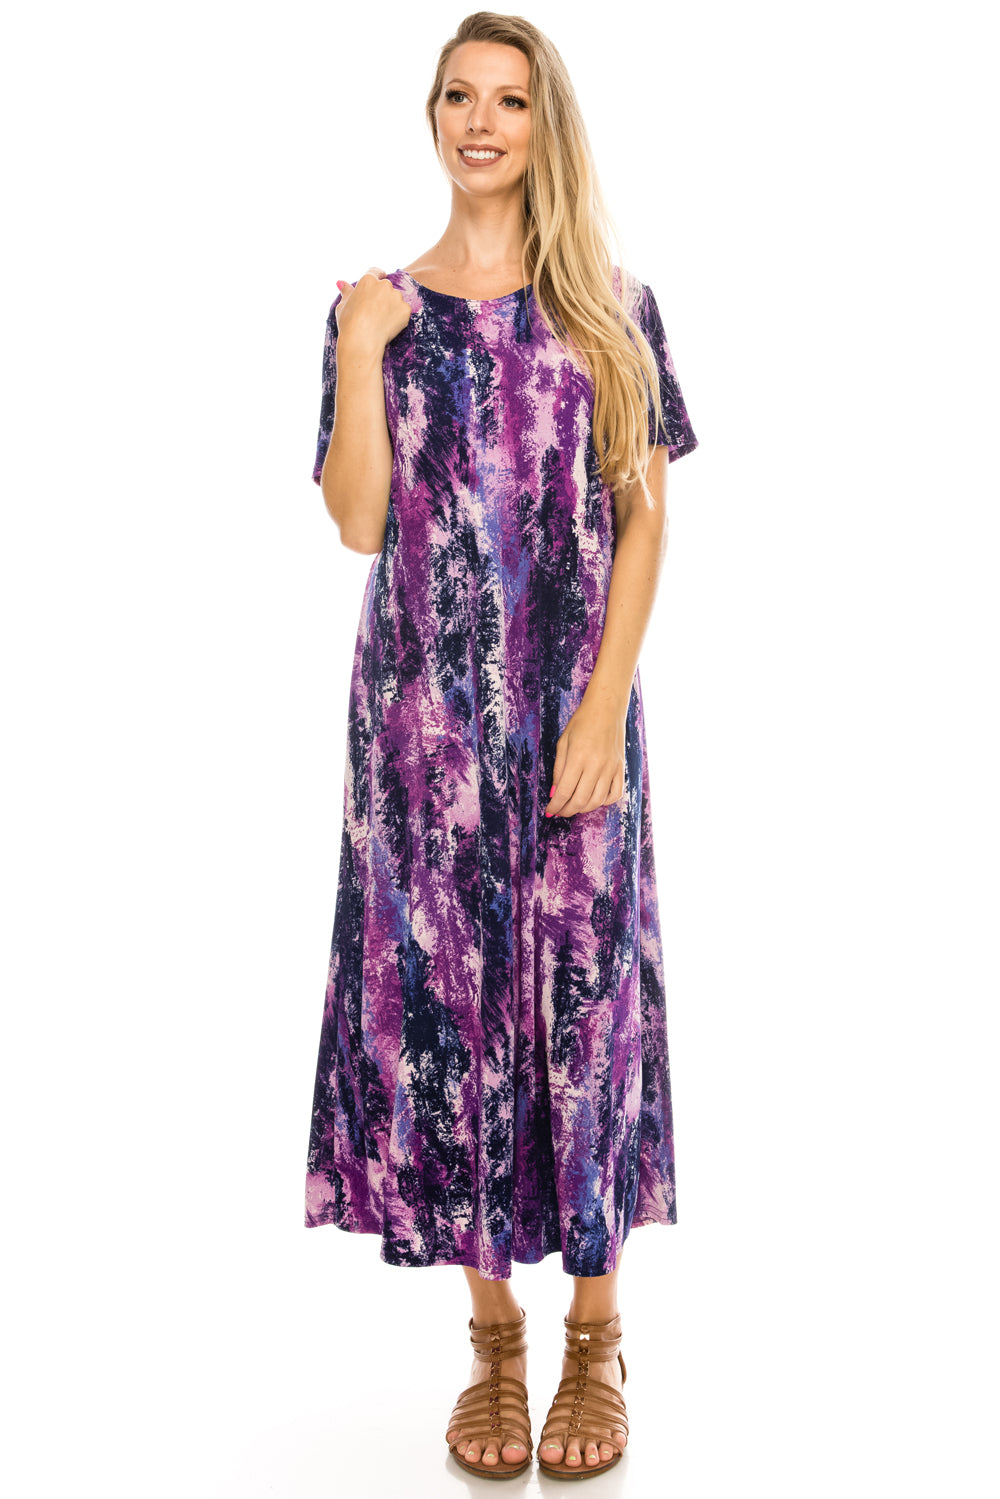 Jostar Women's Stretchy Long Dress Short Sleeve Print, 702BN-SP-W170 - Jostar Online